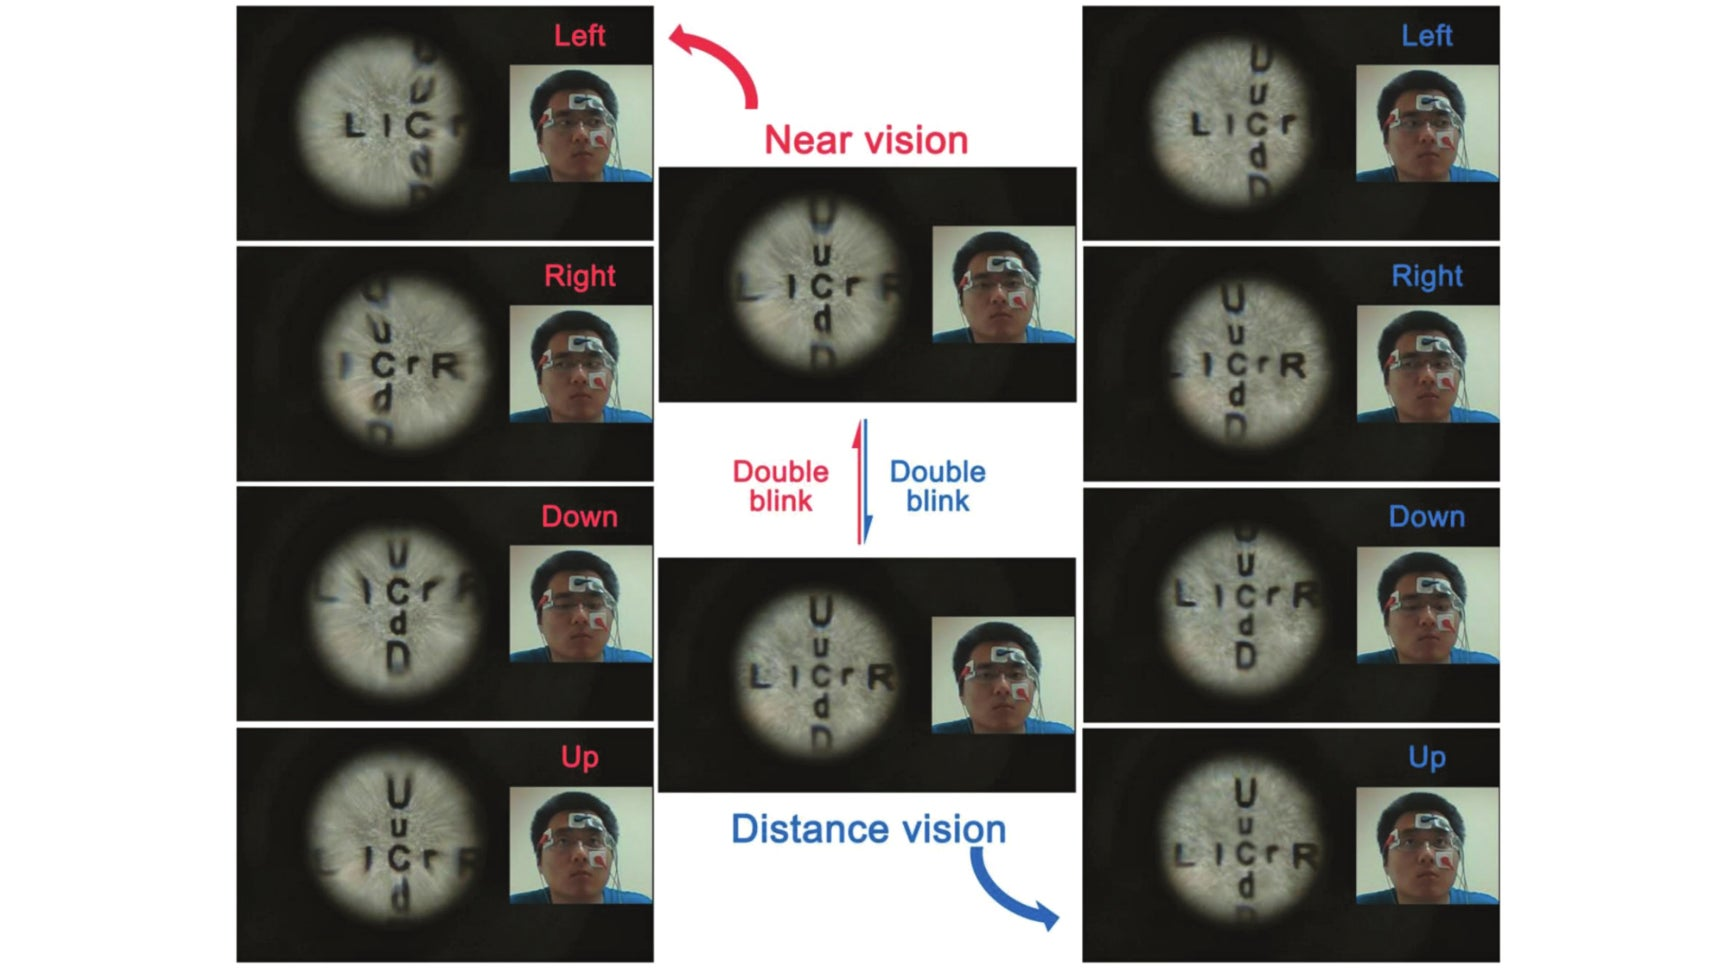 Contact Lenses That Can Change Focus And Zoom When You Blink Move Closer To Reality